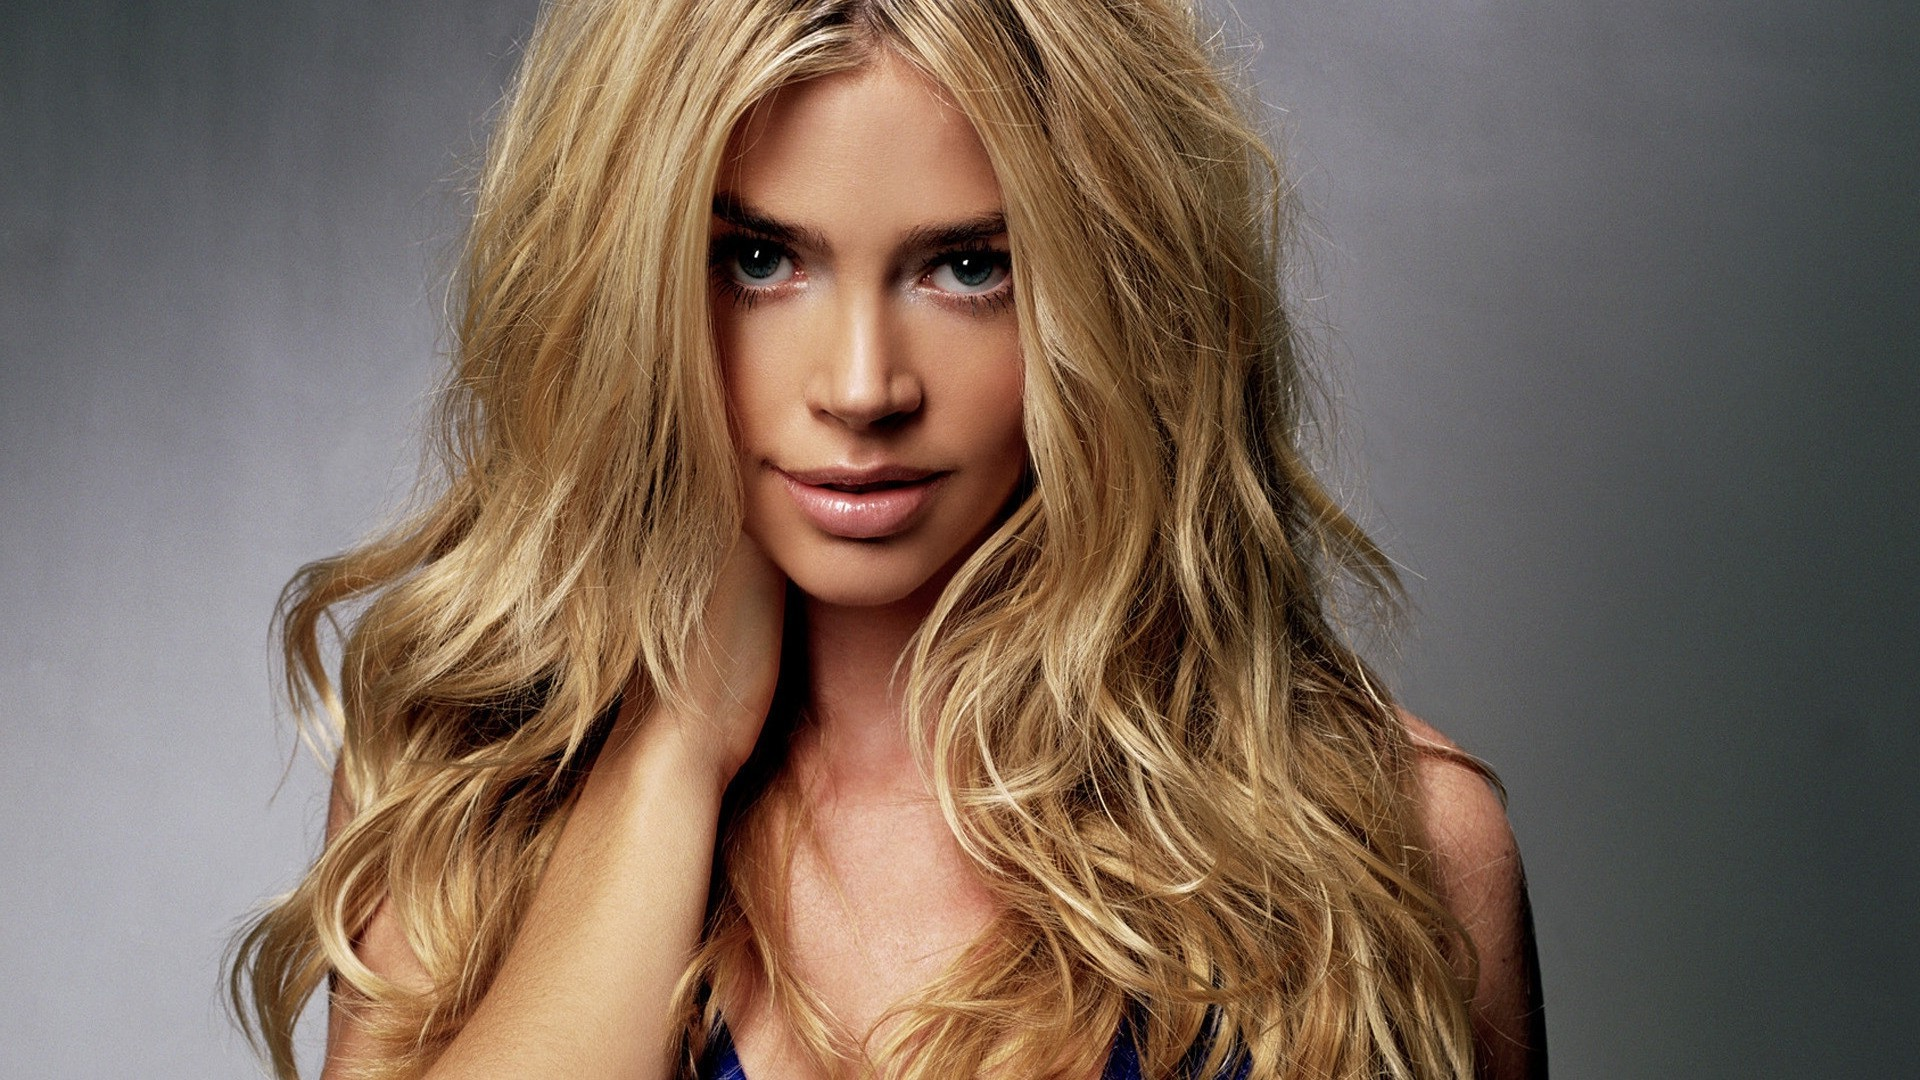 denise richards 1920x1200 wallpapers - photo #9